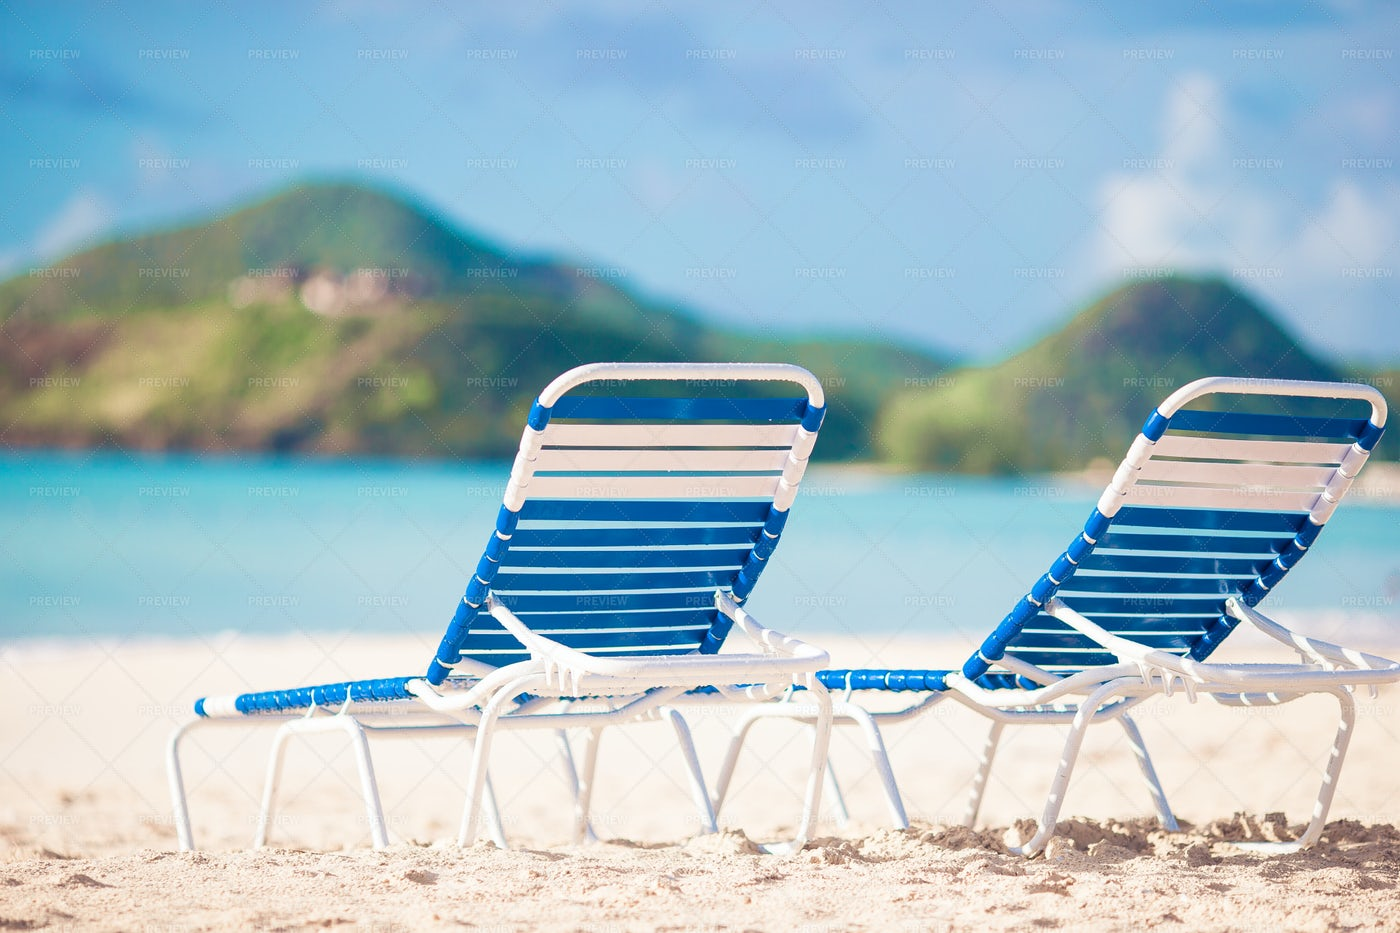 White Lounge Chairs On The Beach: Stock Photos